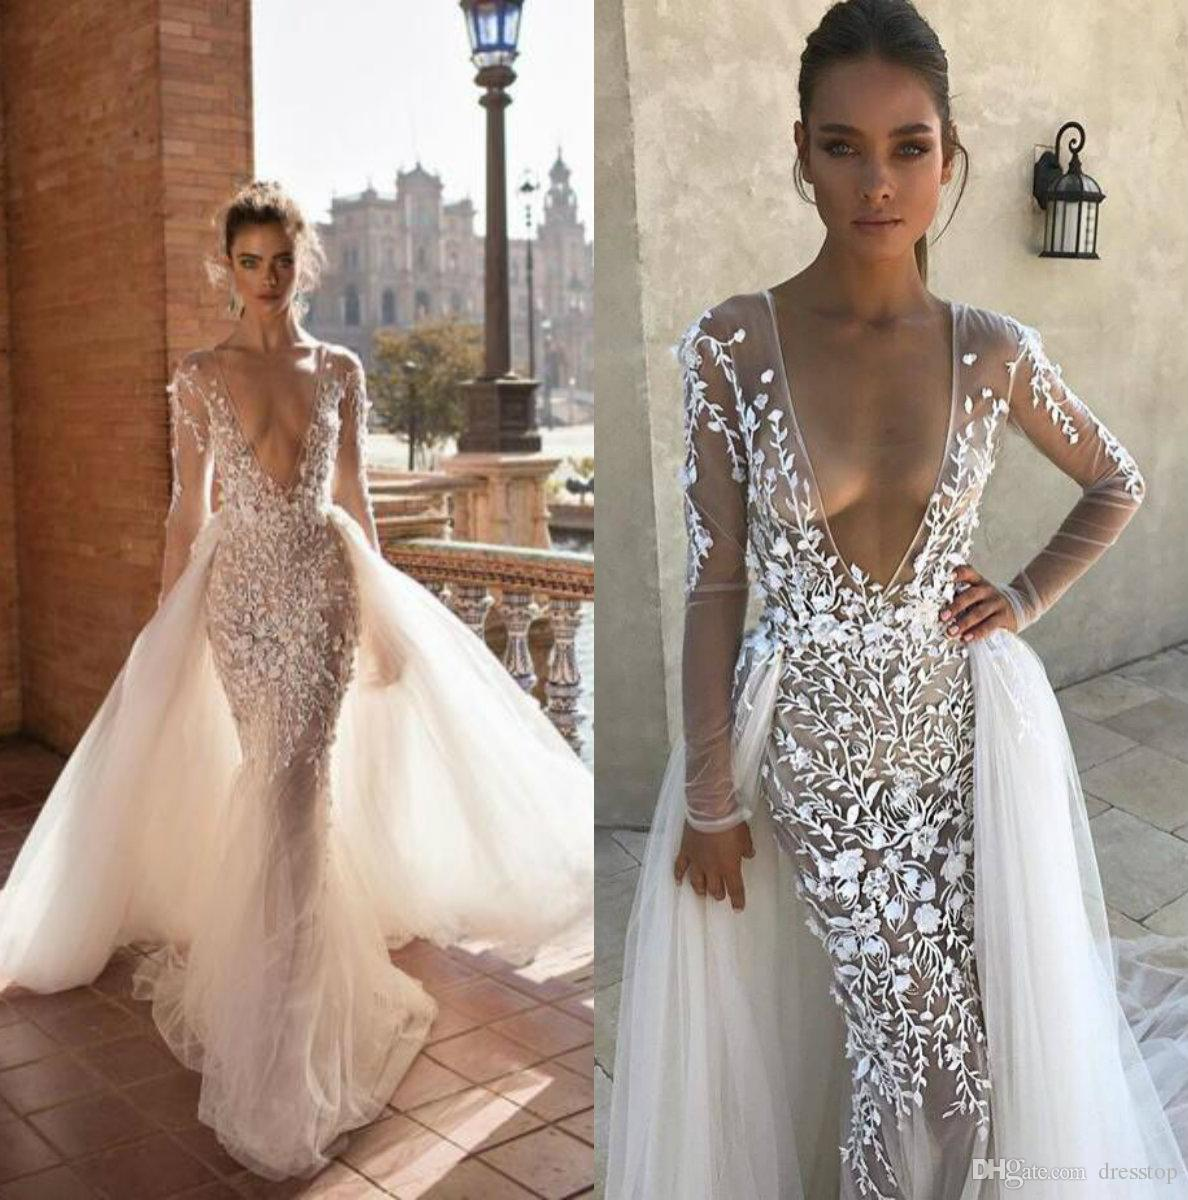 2018 Berta Mermaid Wedding Dresses Applique Plunging Neck Bridal Gowns With  Detachable Train Long Sleeve Illusion Wedding Dress Custom Made Cheap  Wedding ... 59955cf7a